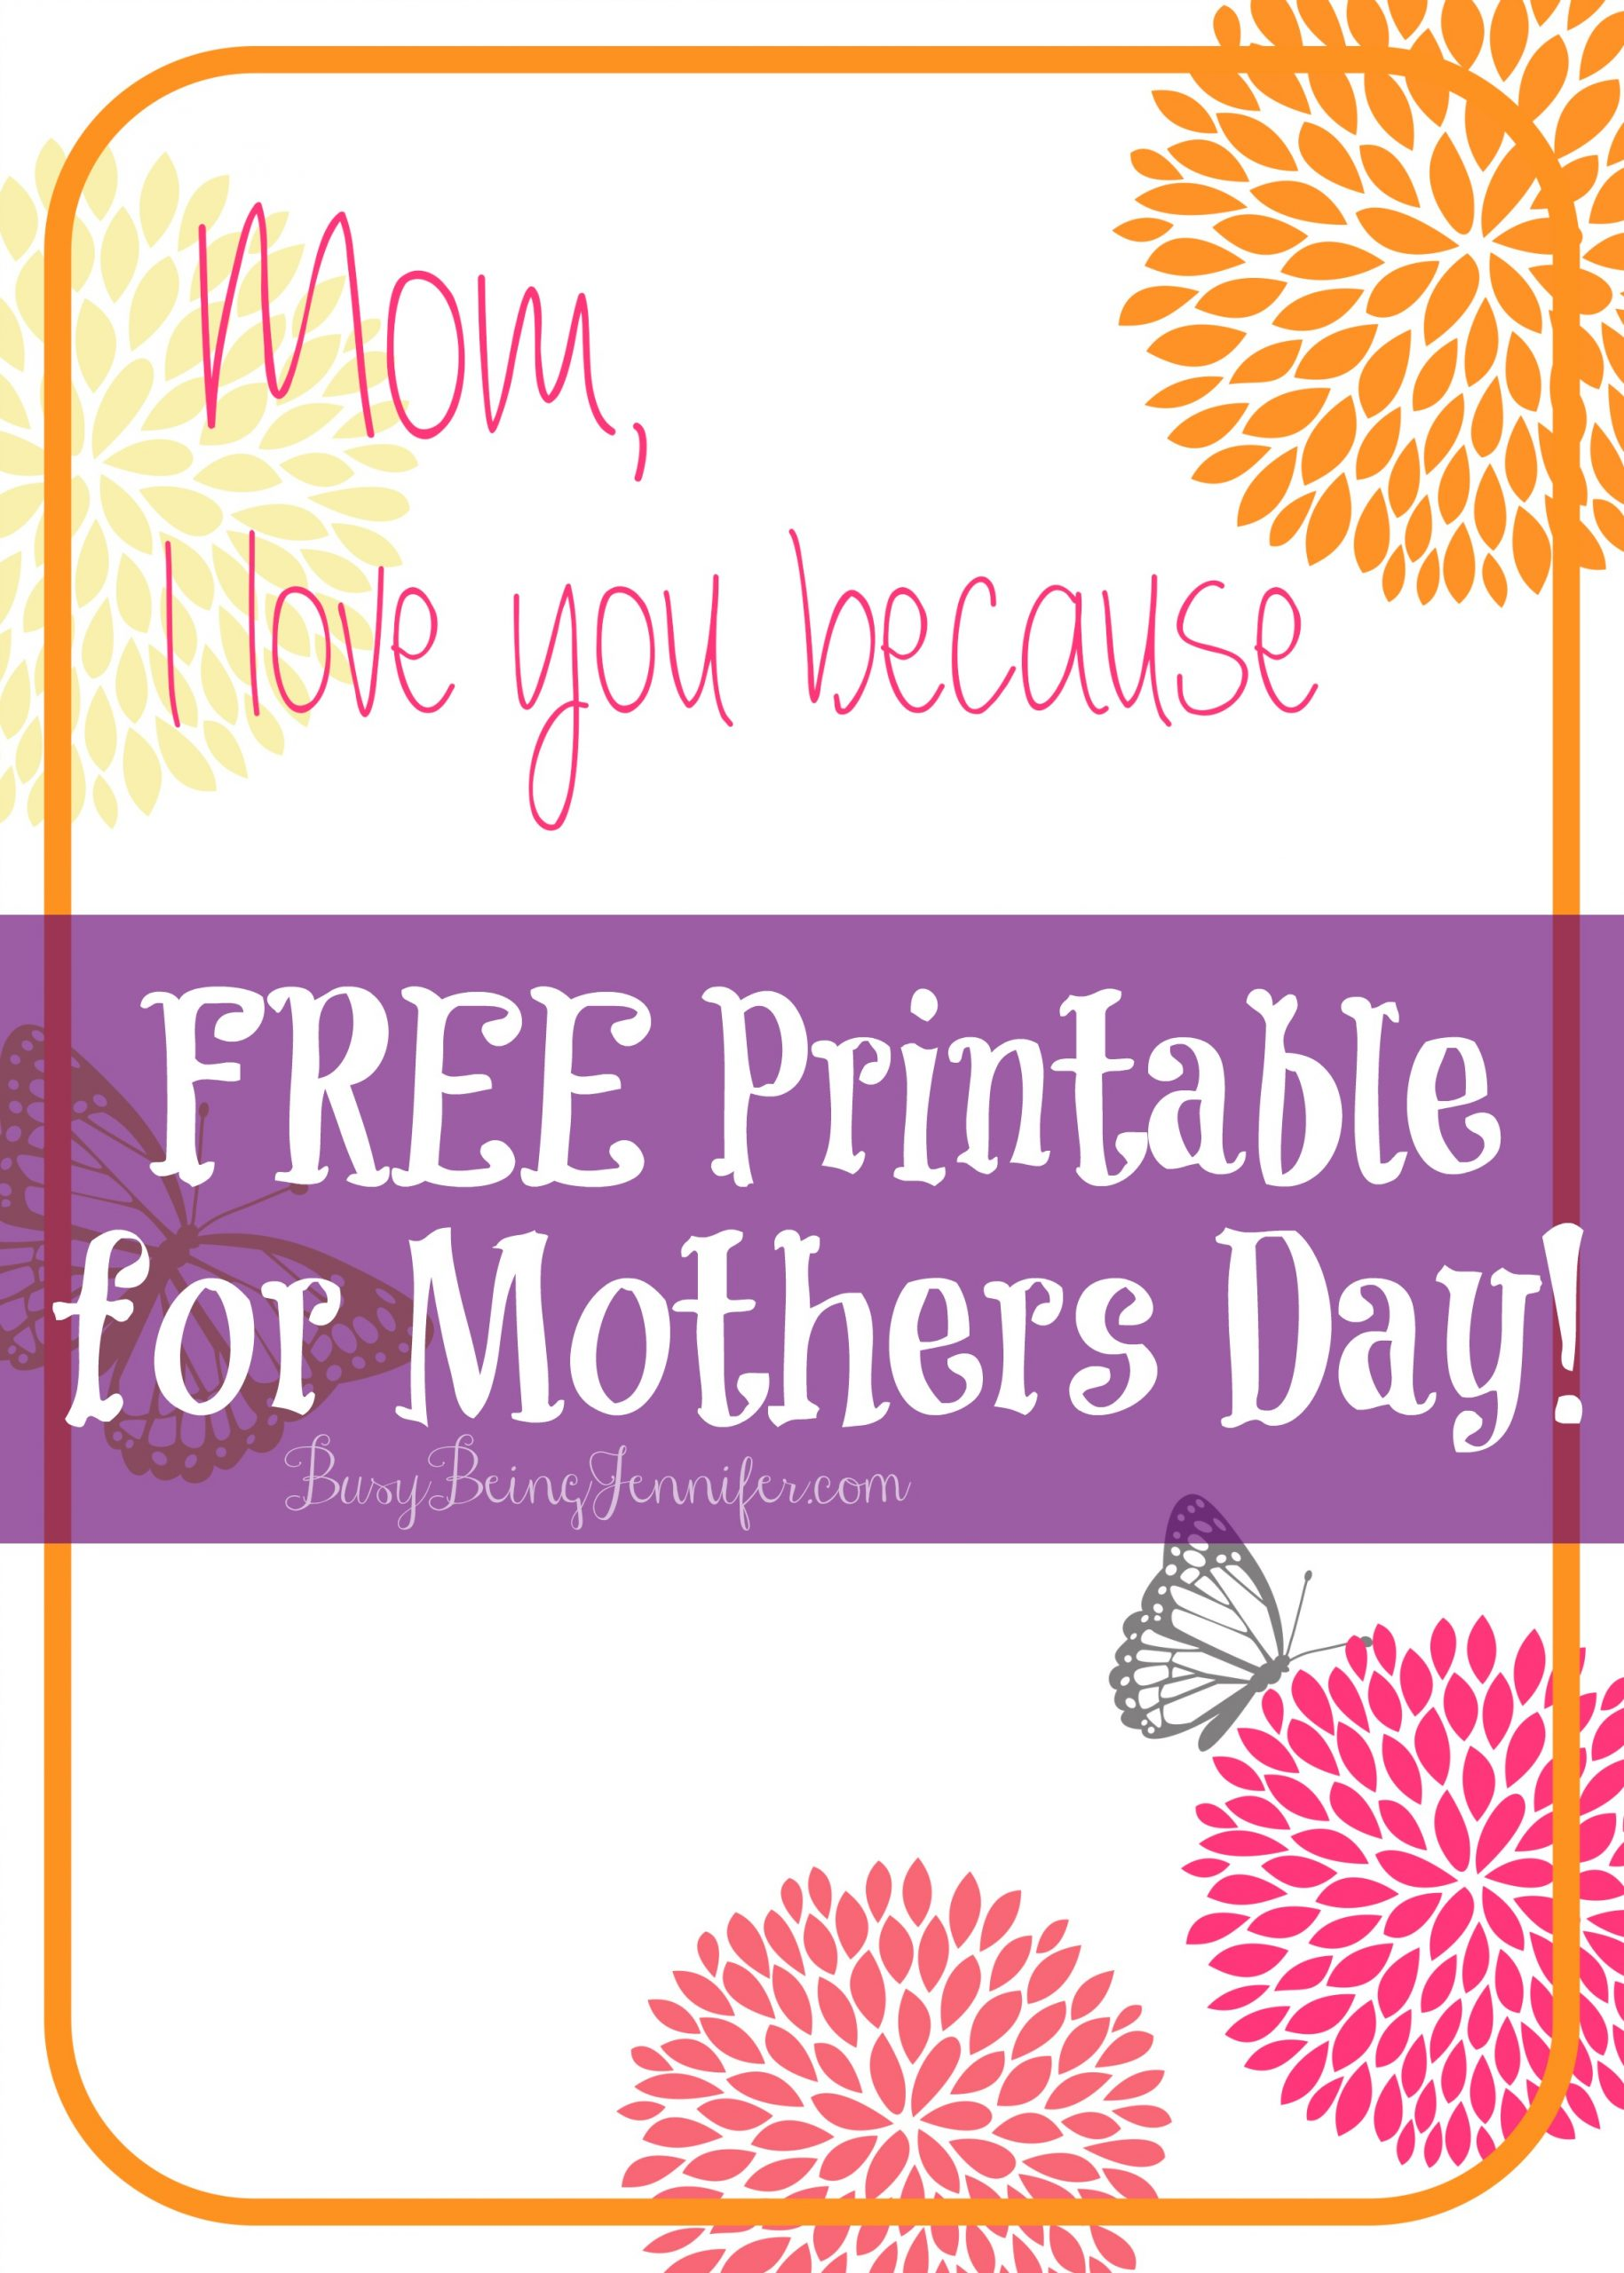 FREE Mothers Day PrintableBusy Being Jennifer